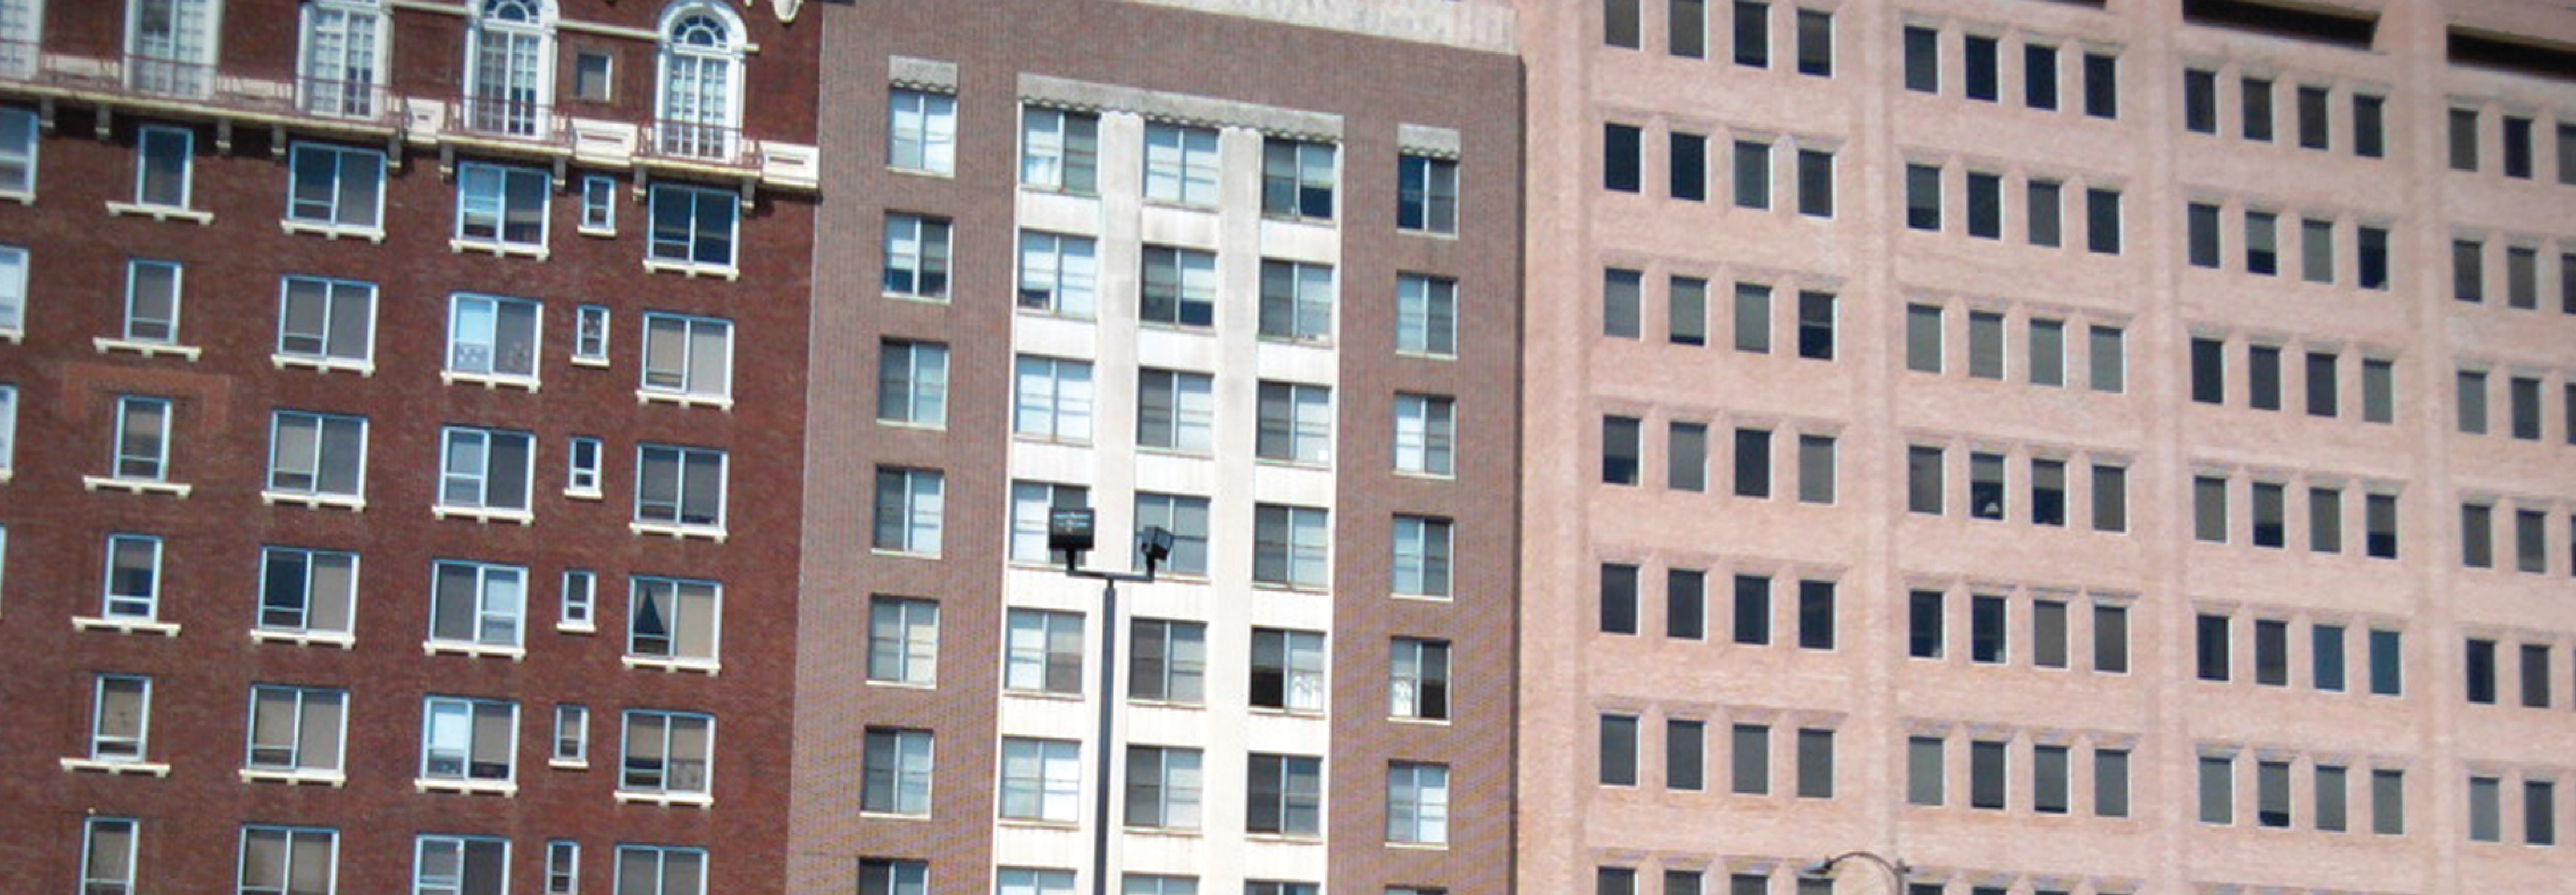 Close up of apartment buildings in Columbus Consolidated Government, Georgia. The City uses GIS for Land records and parcel fabric.